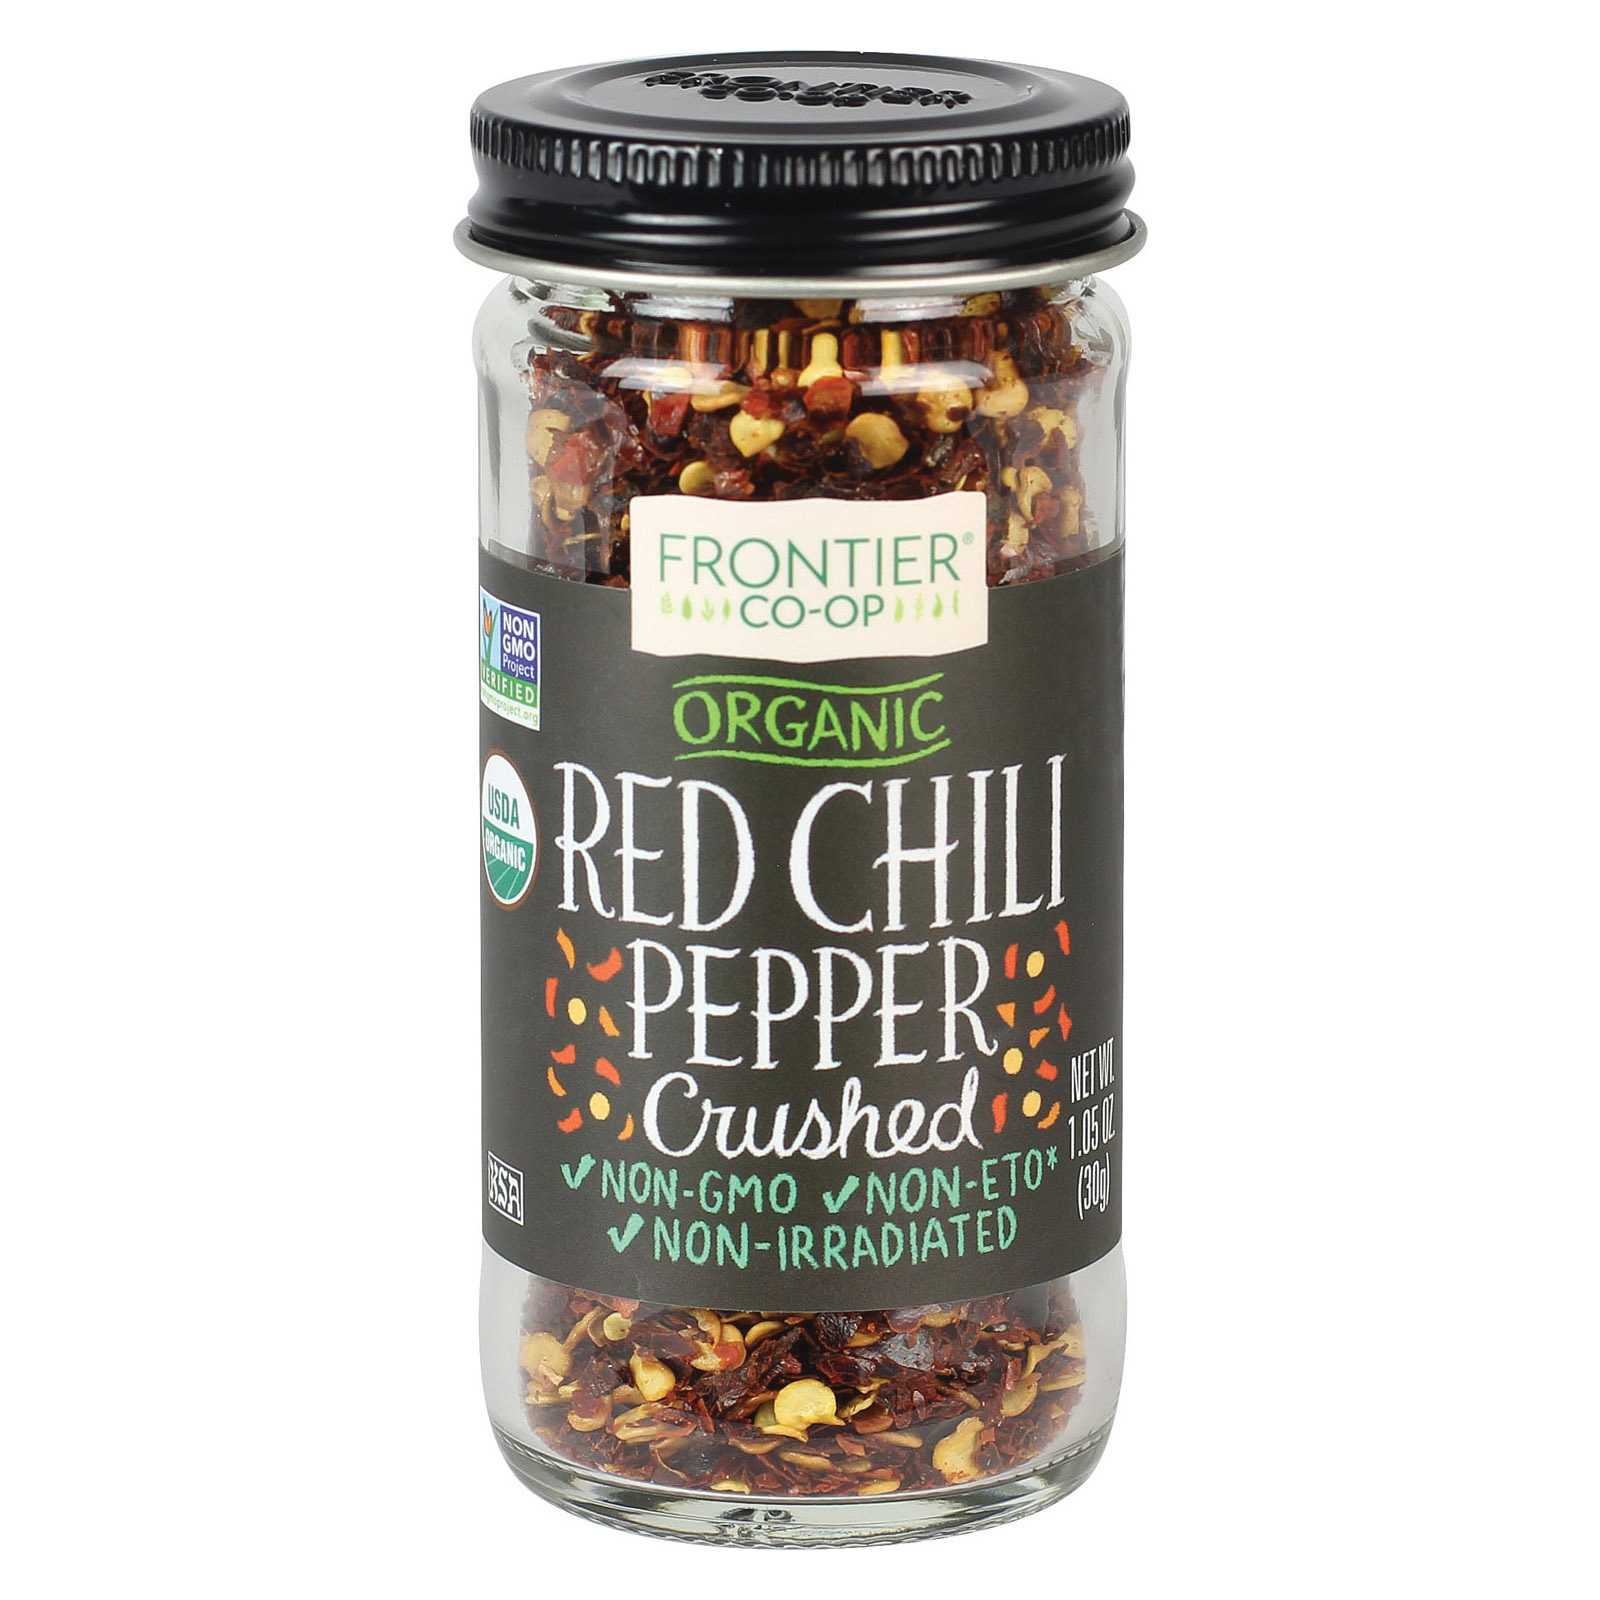 Frontier Natural Products Coop Chili Pepper - Organic - Red - Crushed - 1.05 oz